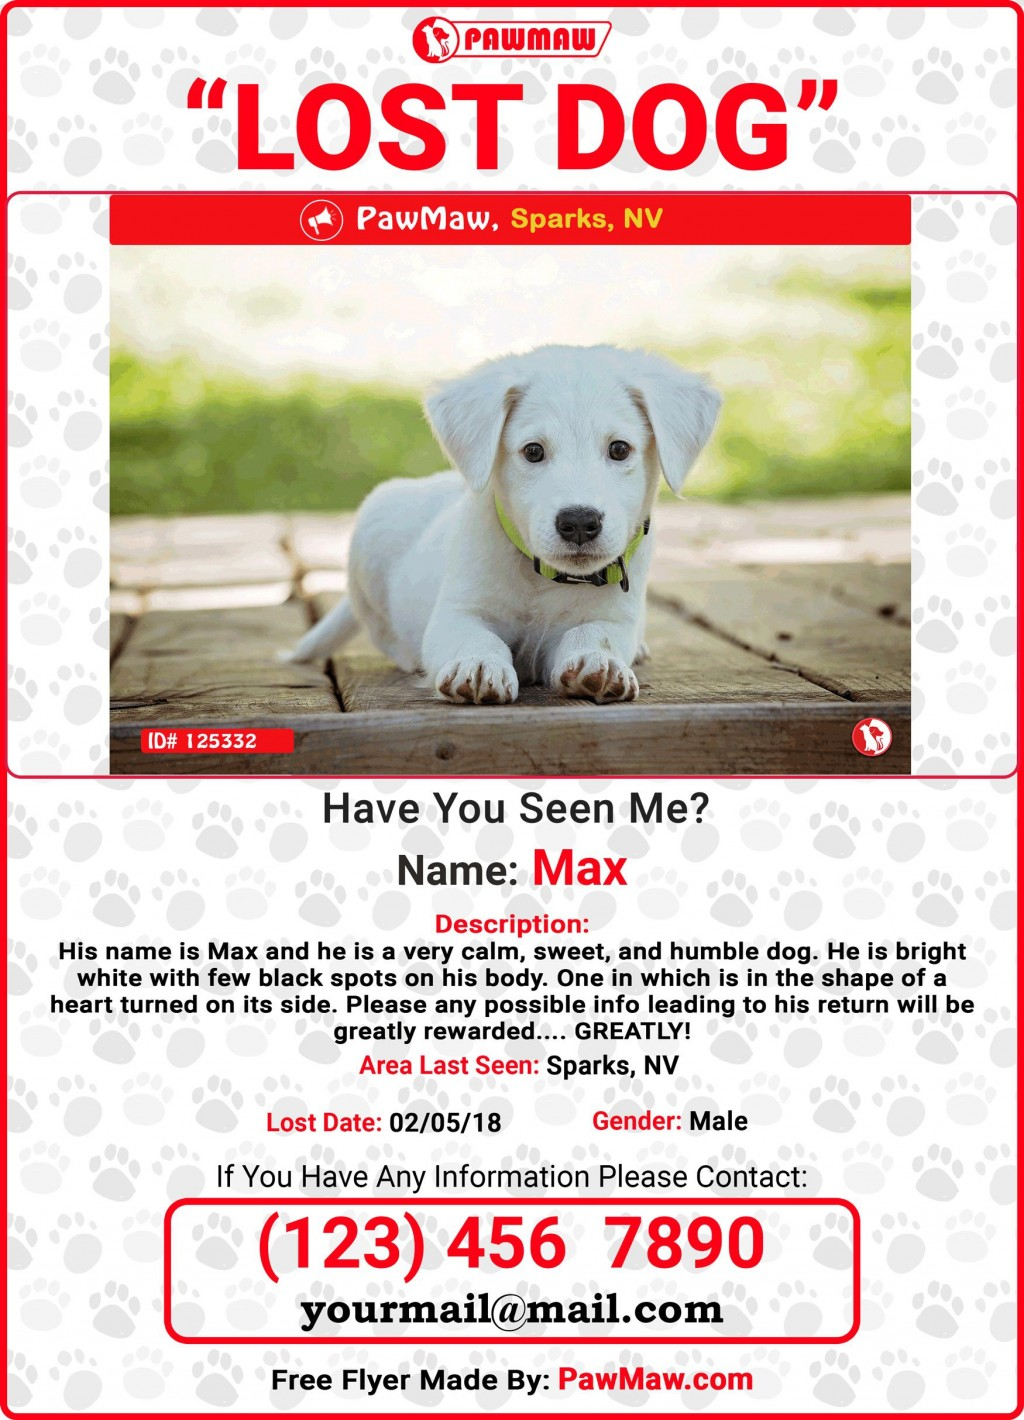 005 Stunning Lost Pet Flyer Template High Def  WordLarge